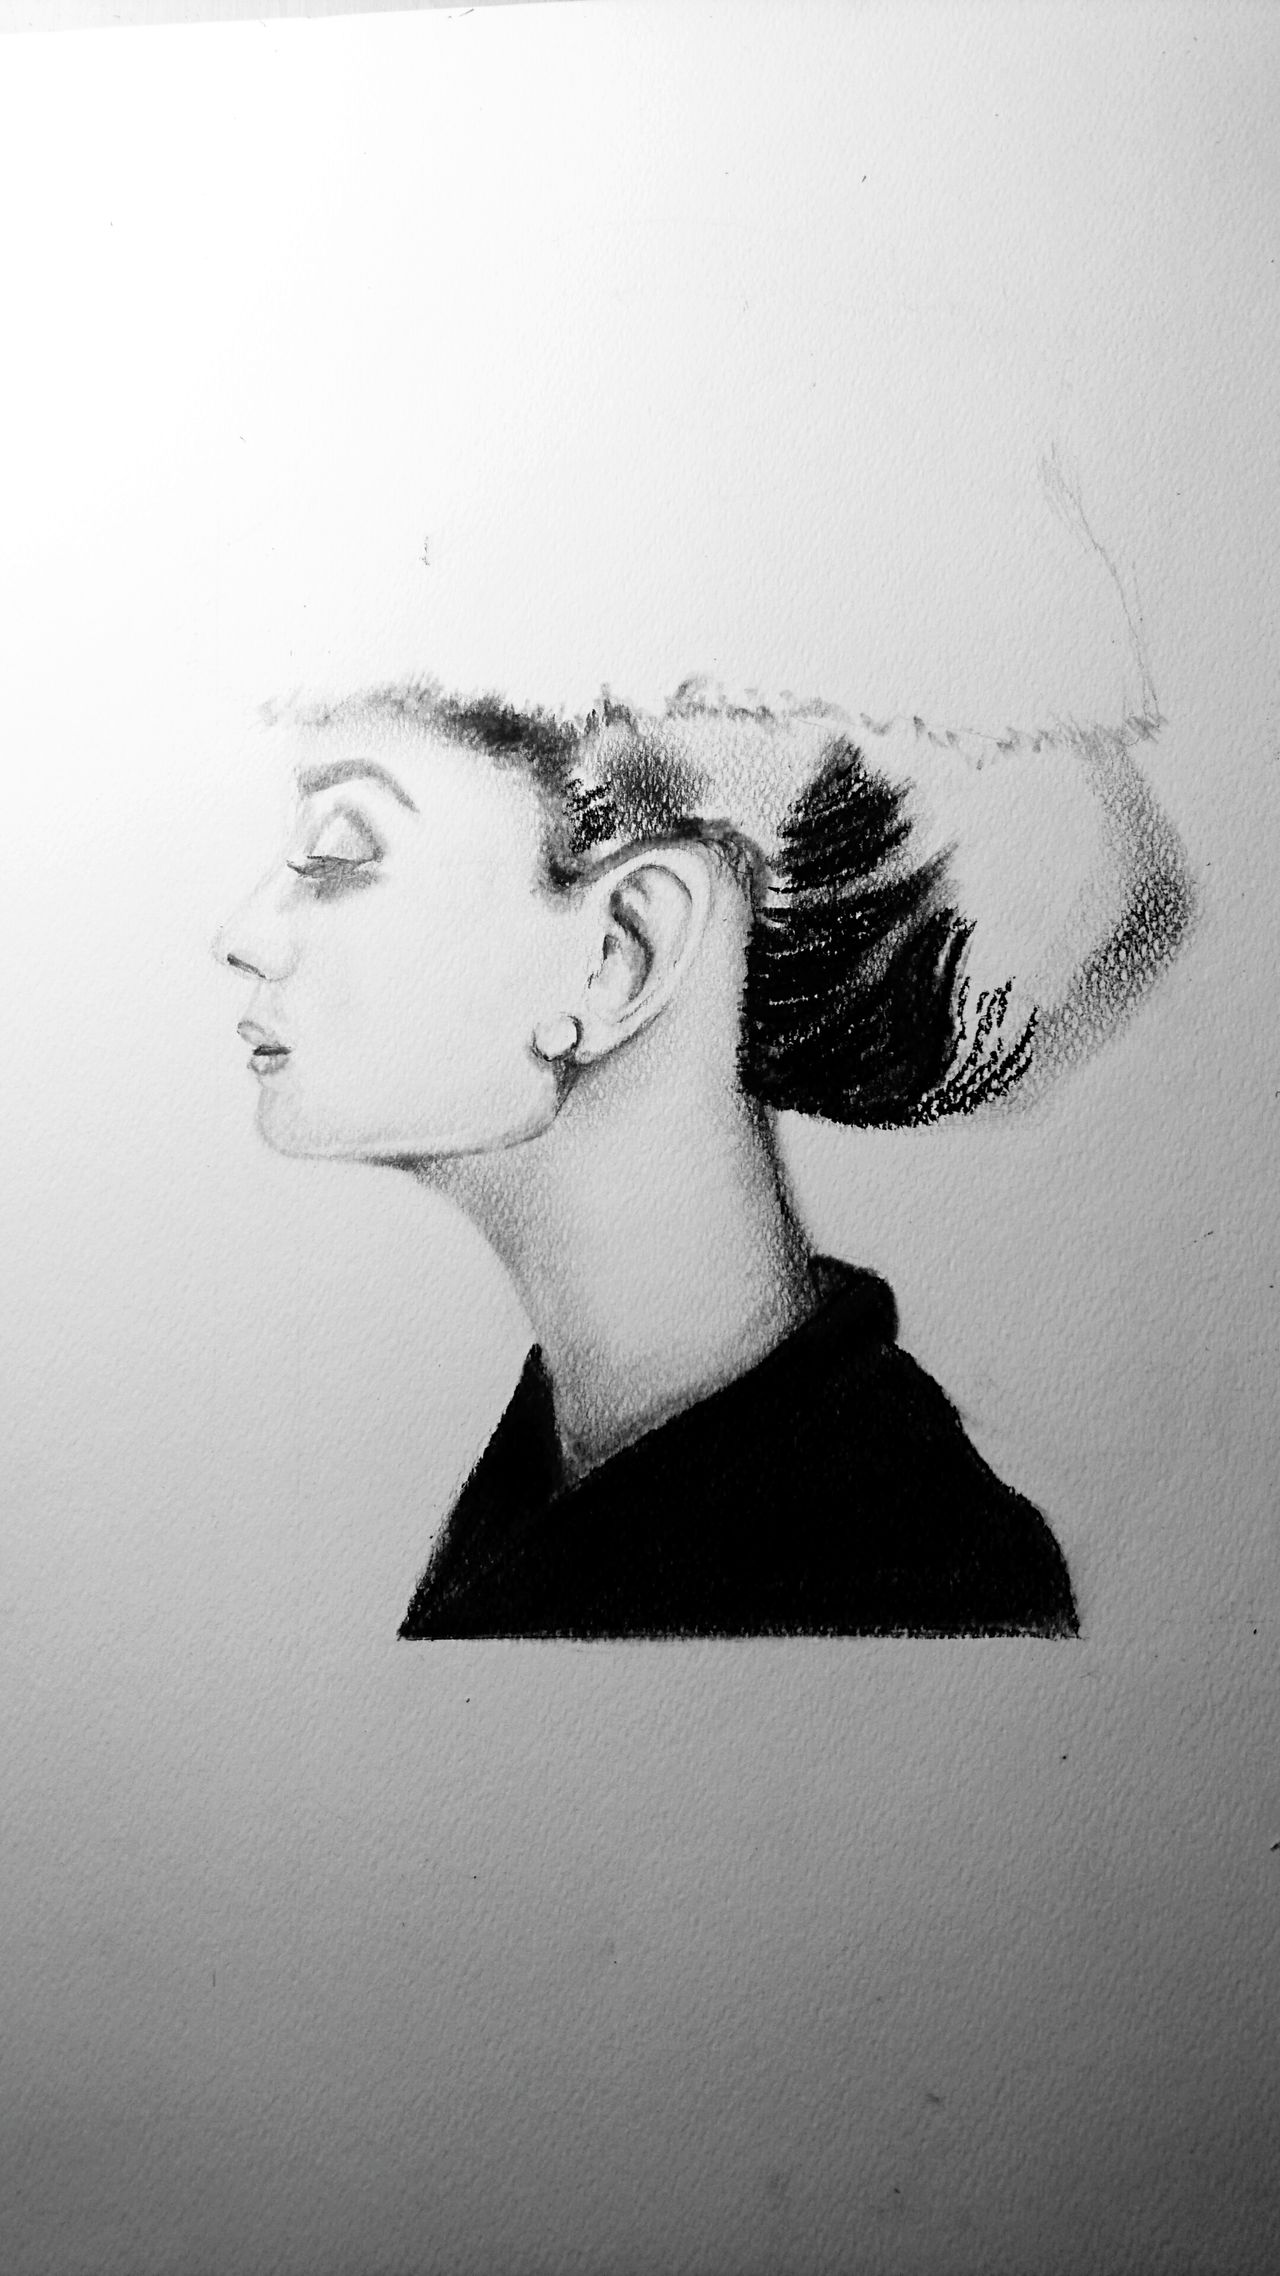 Only Women One Woman Only Depression - Sadness Adults Only One Person Indoors  Drawing - Art Product Black And White Sketch Work In Progress ArtWork Art Charocal Drawing Audrey Hepburn People Close-up Human Adult